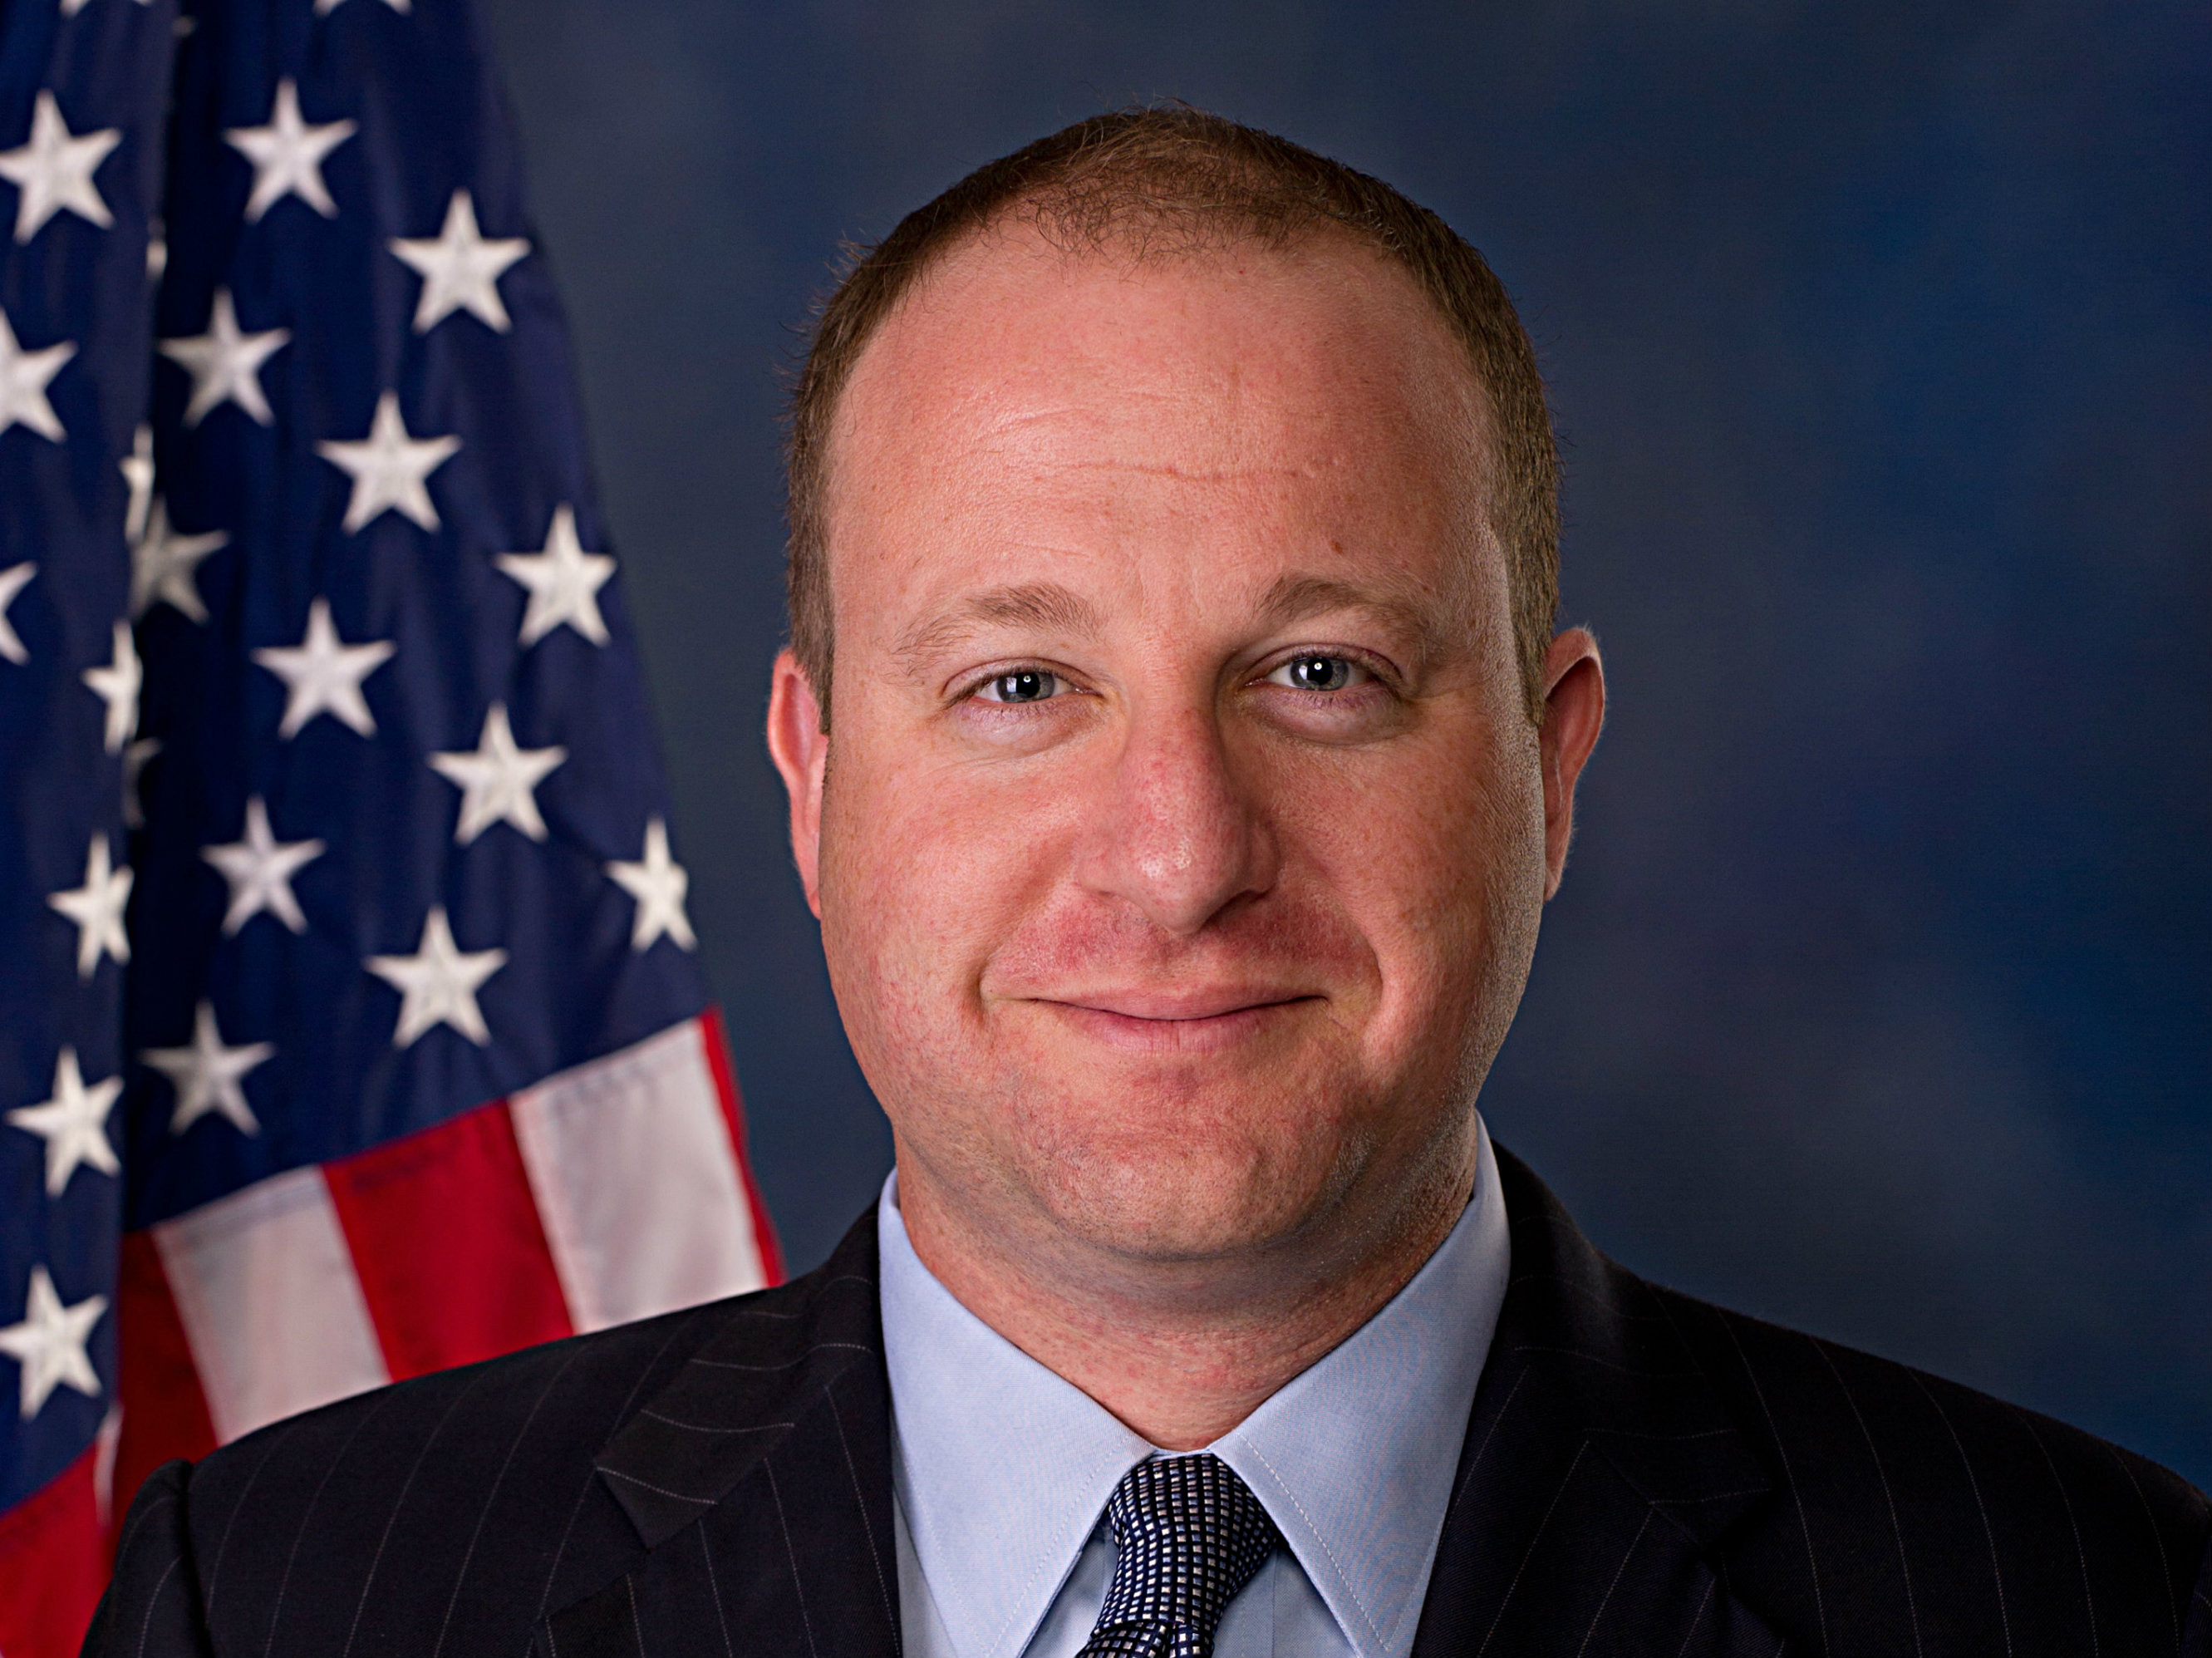 Photo: US Rep. Jared Polis